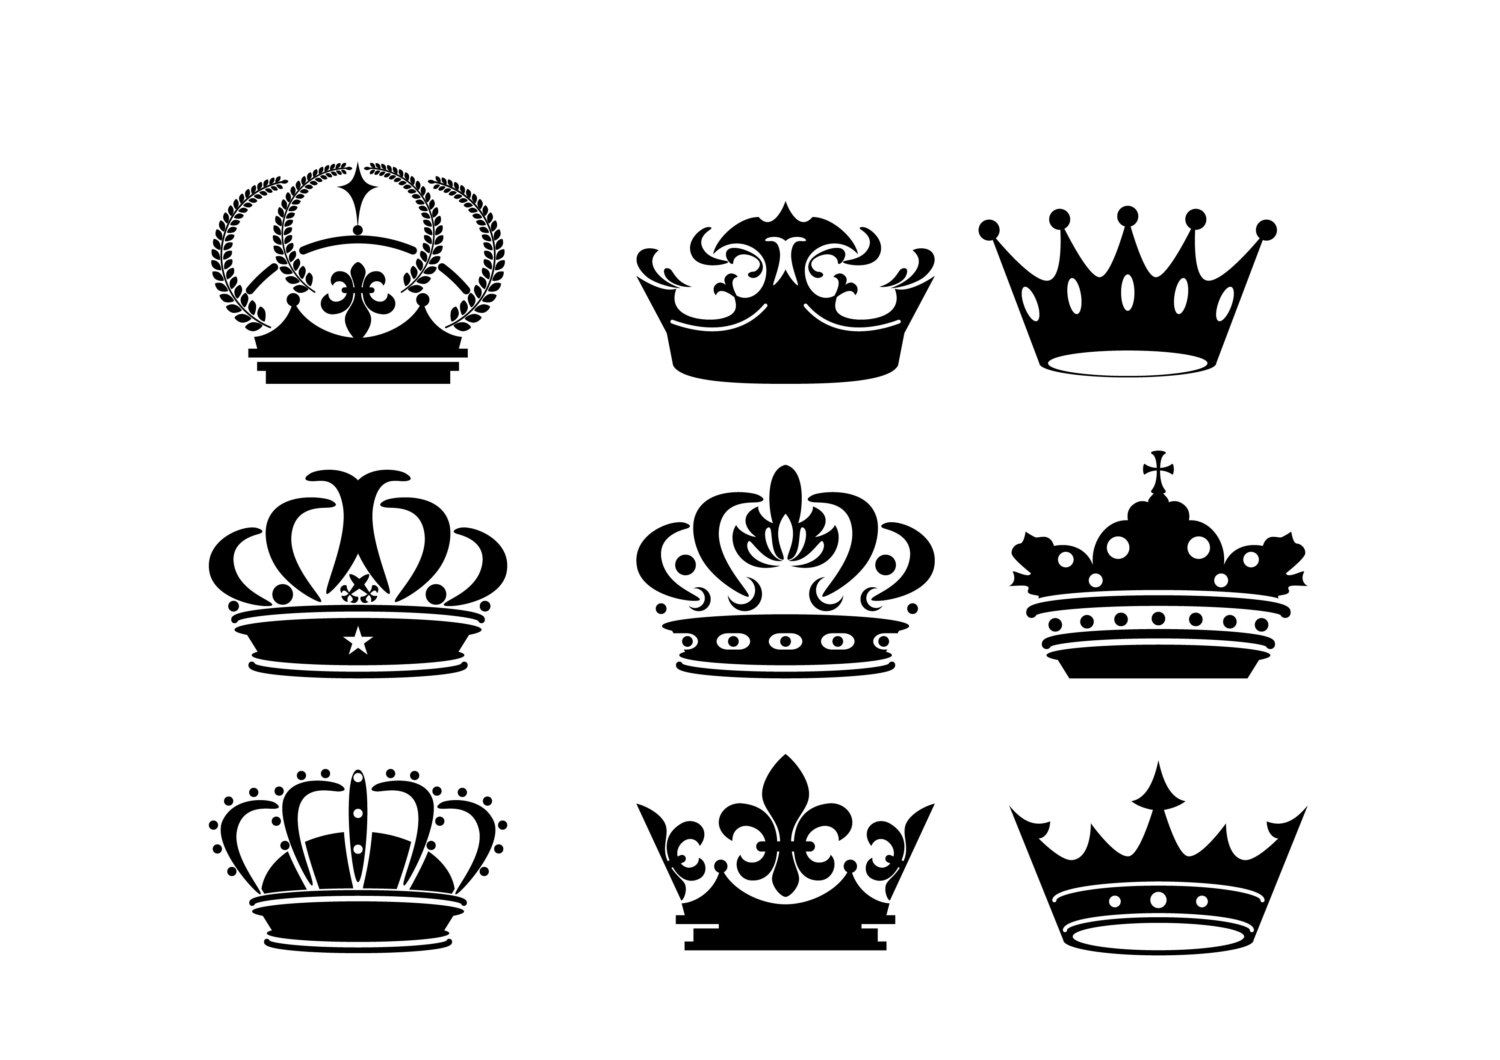 Queen Crown Silhouette